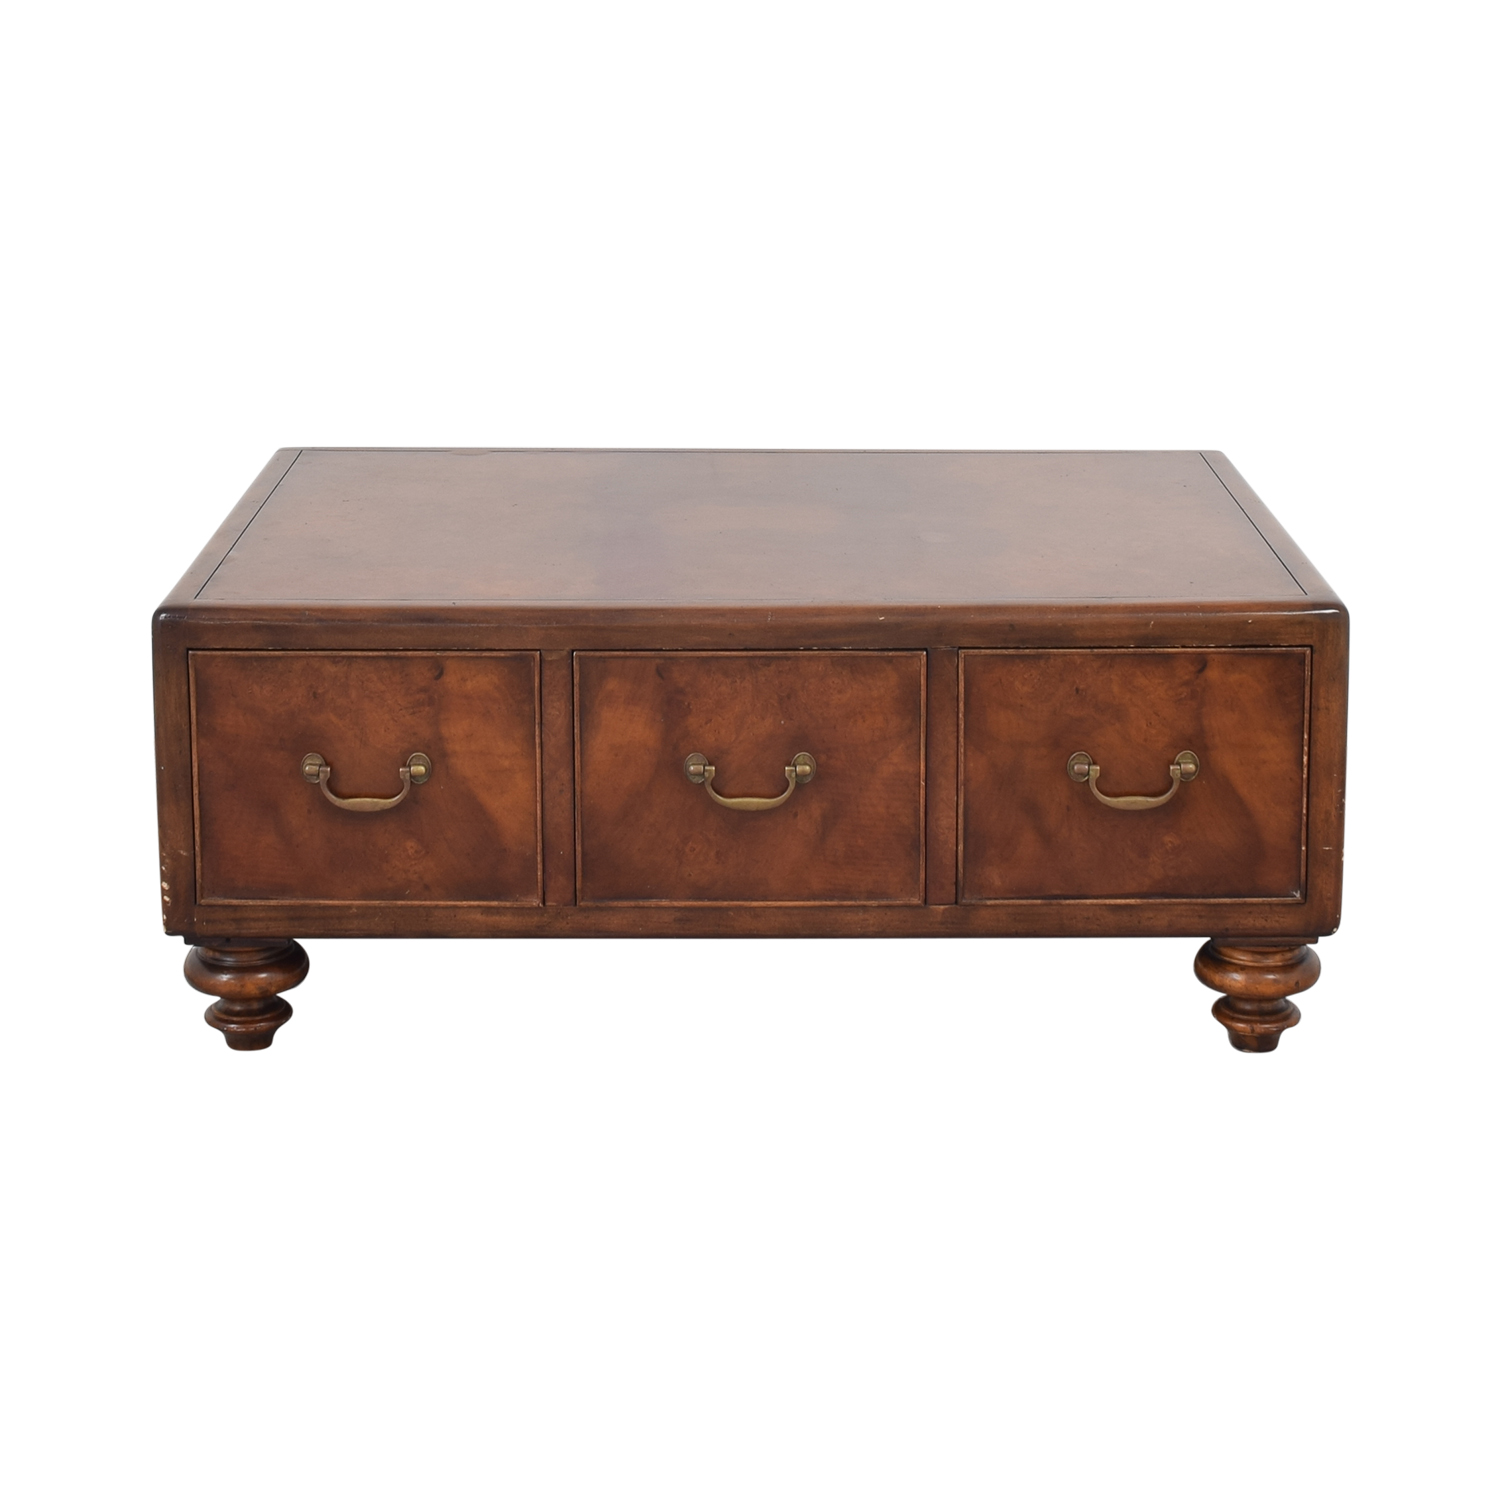 shop Thomasville Ernest Hemingway Three Drawer Coffee Table Thomasville Coffee Tables